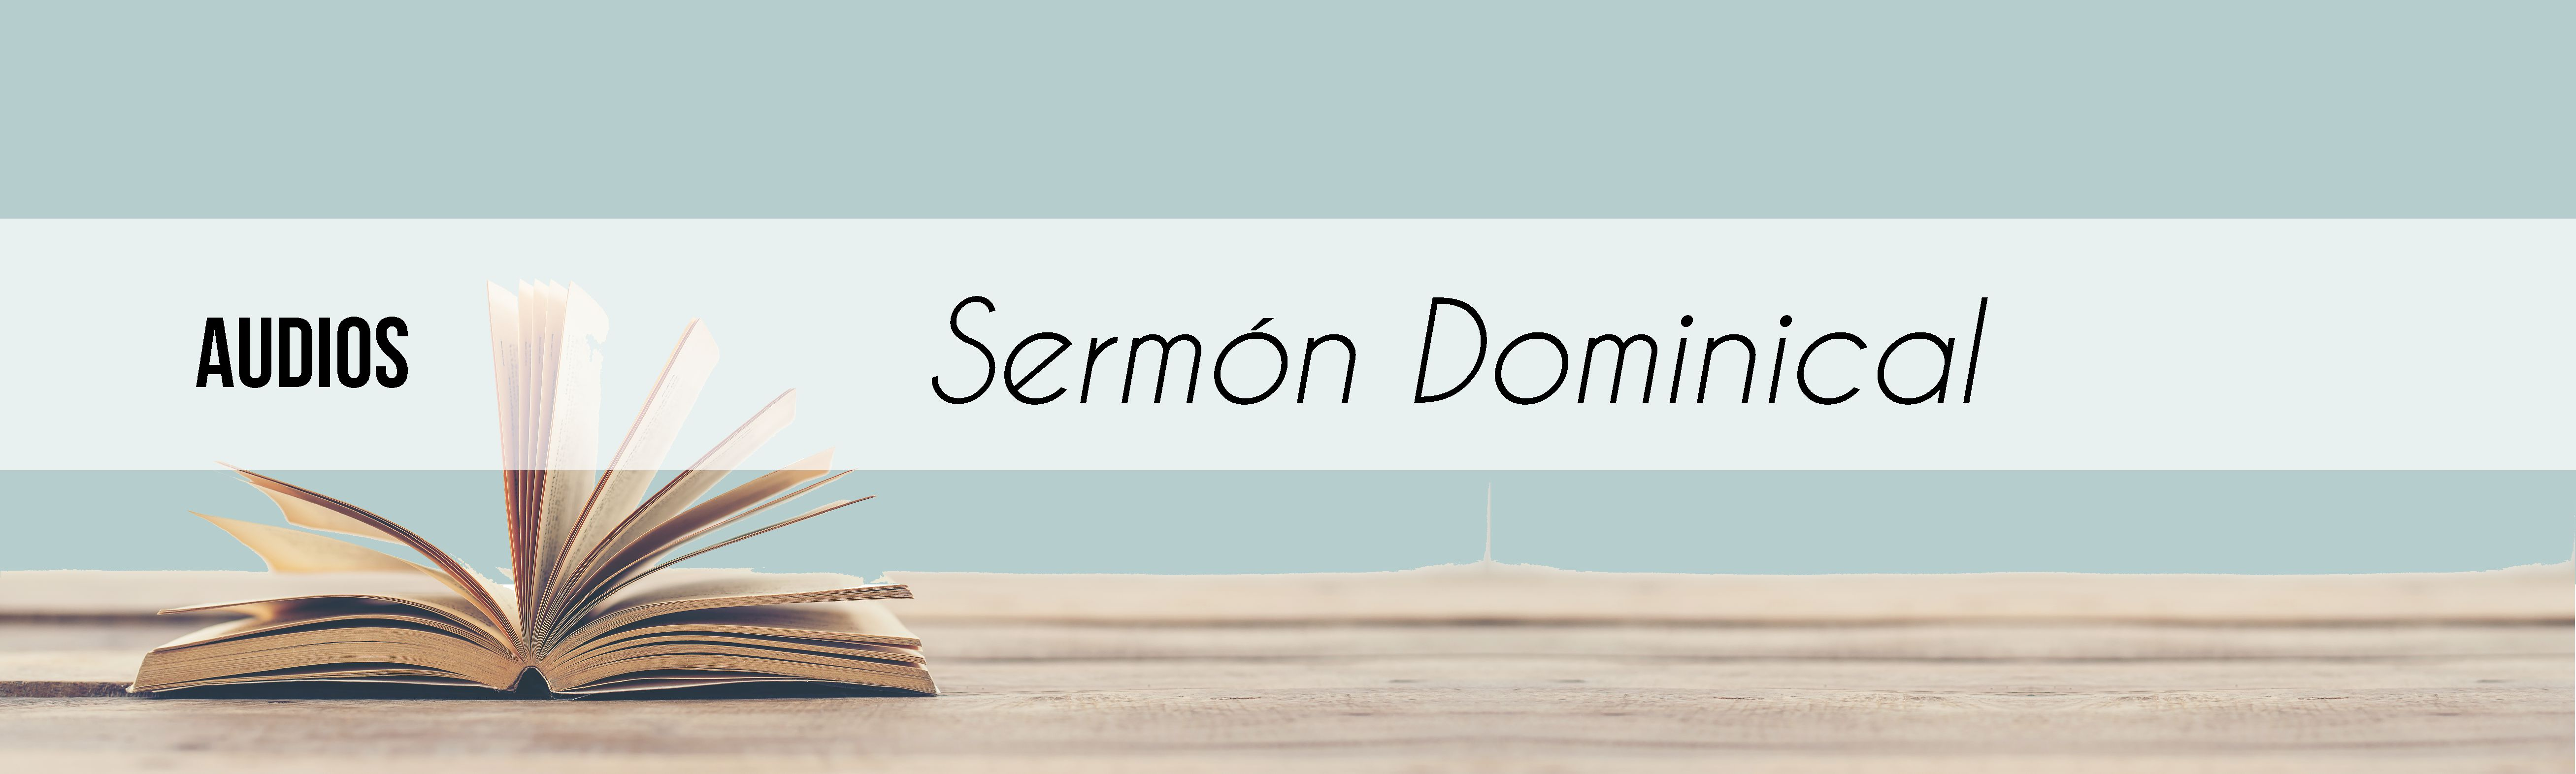 sermon-dominical-banner